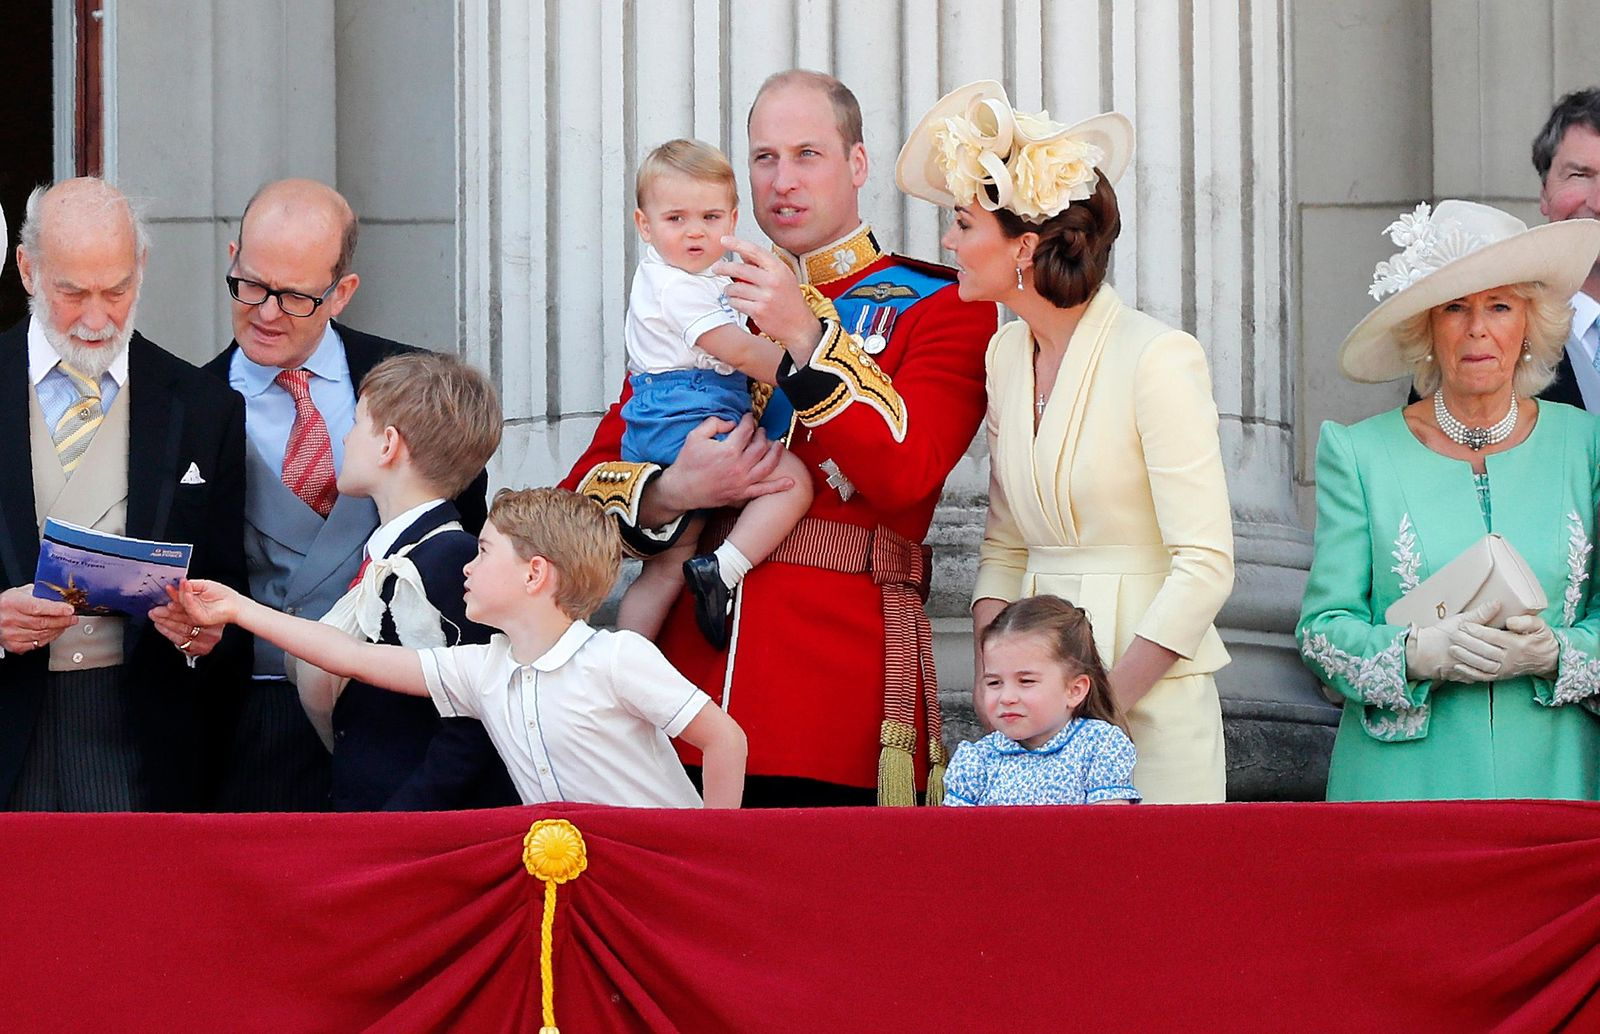 Britain's Prince William and Kate, the Duchess of Cambridge with their Prince George, center left, Princess Charlotte, center right, and Prince Louis, top center, attend the annual Trooping the Colour Ceremony in London, Saturday, June 8, 2019. Trooping the Colour is the Queen's Birthday Parade and one of the nation's most impressive and iconic annual events attended by almost every member of the Royal Family. (AP Photo/Frank Augstein)